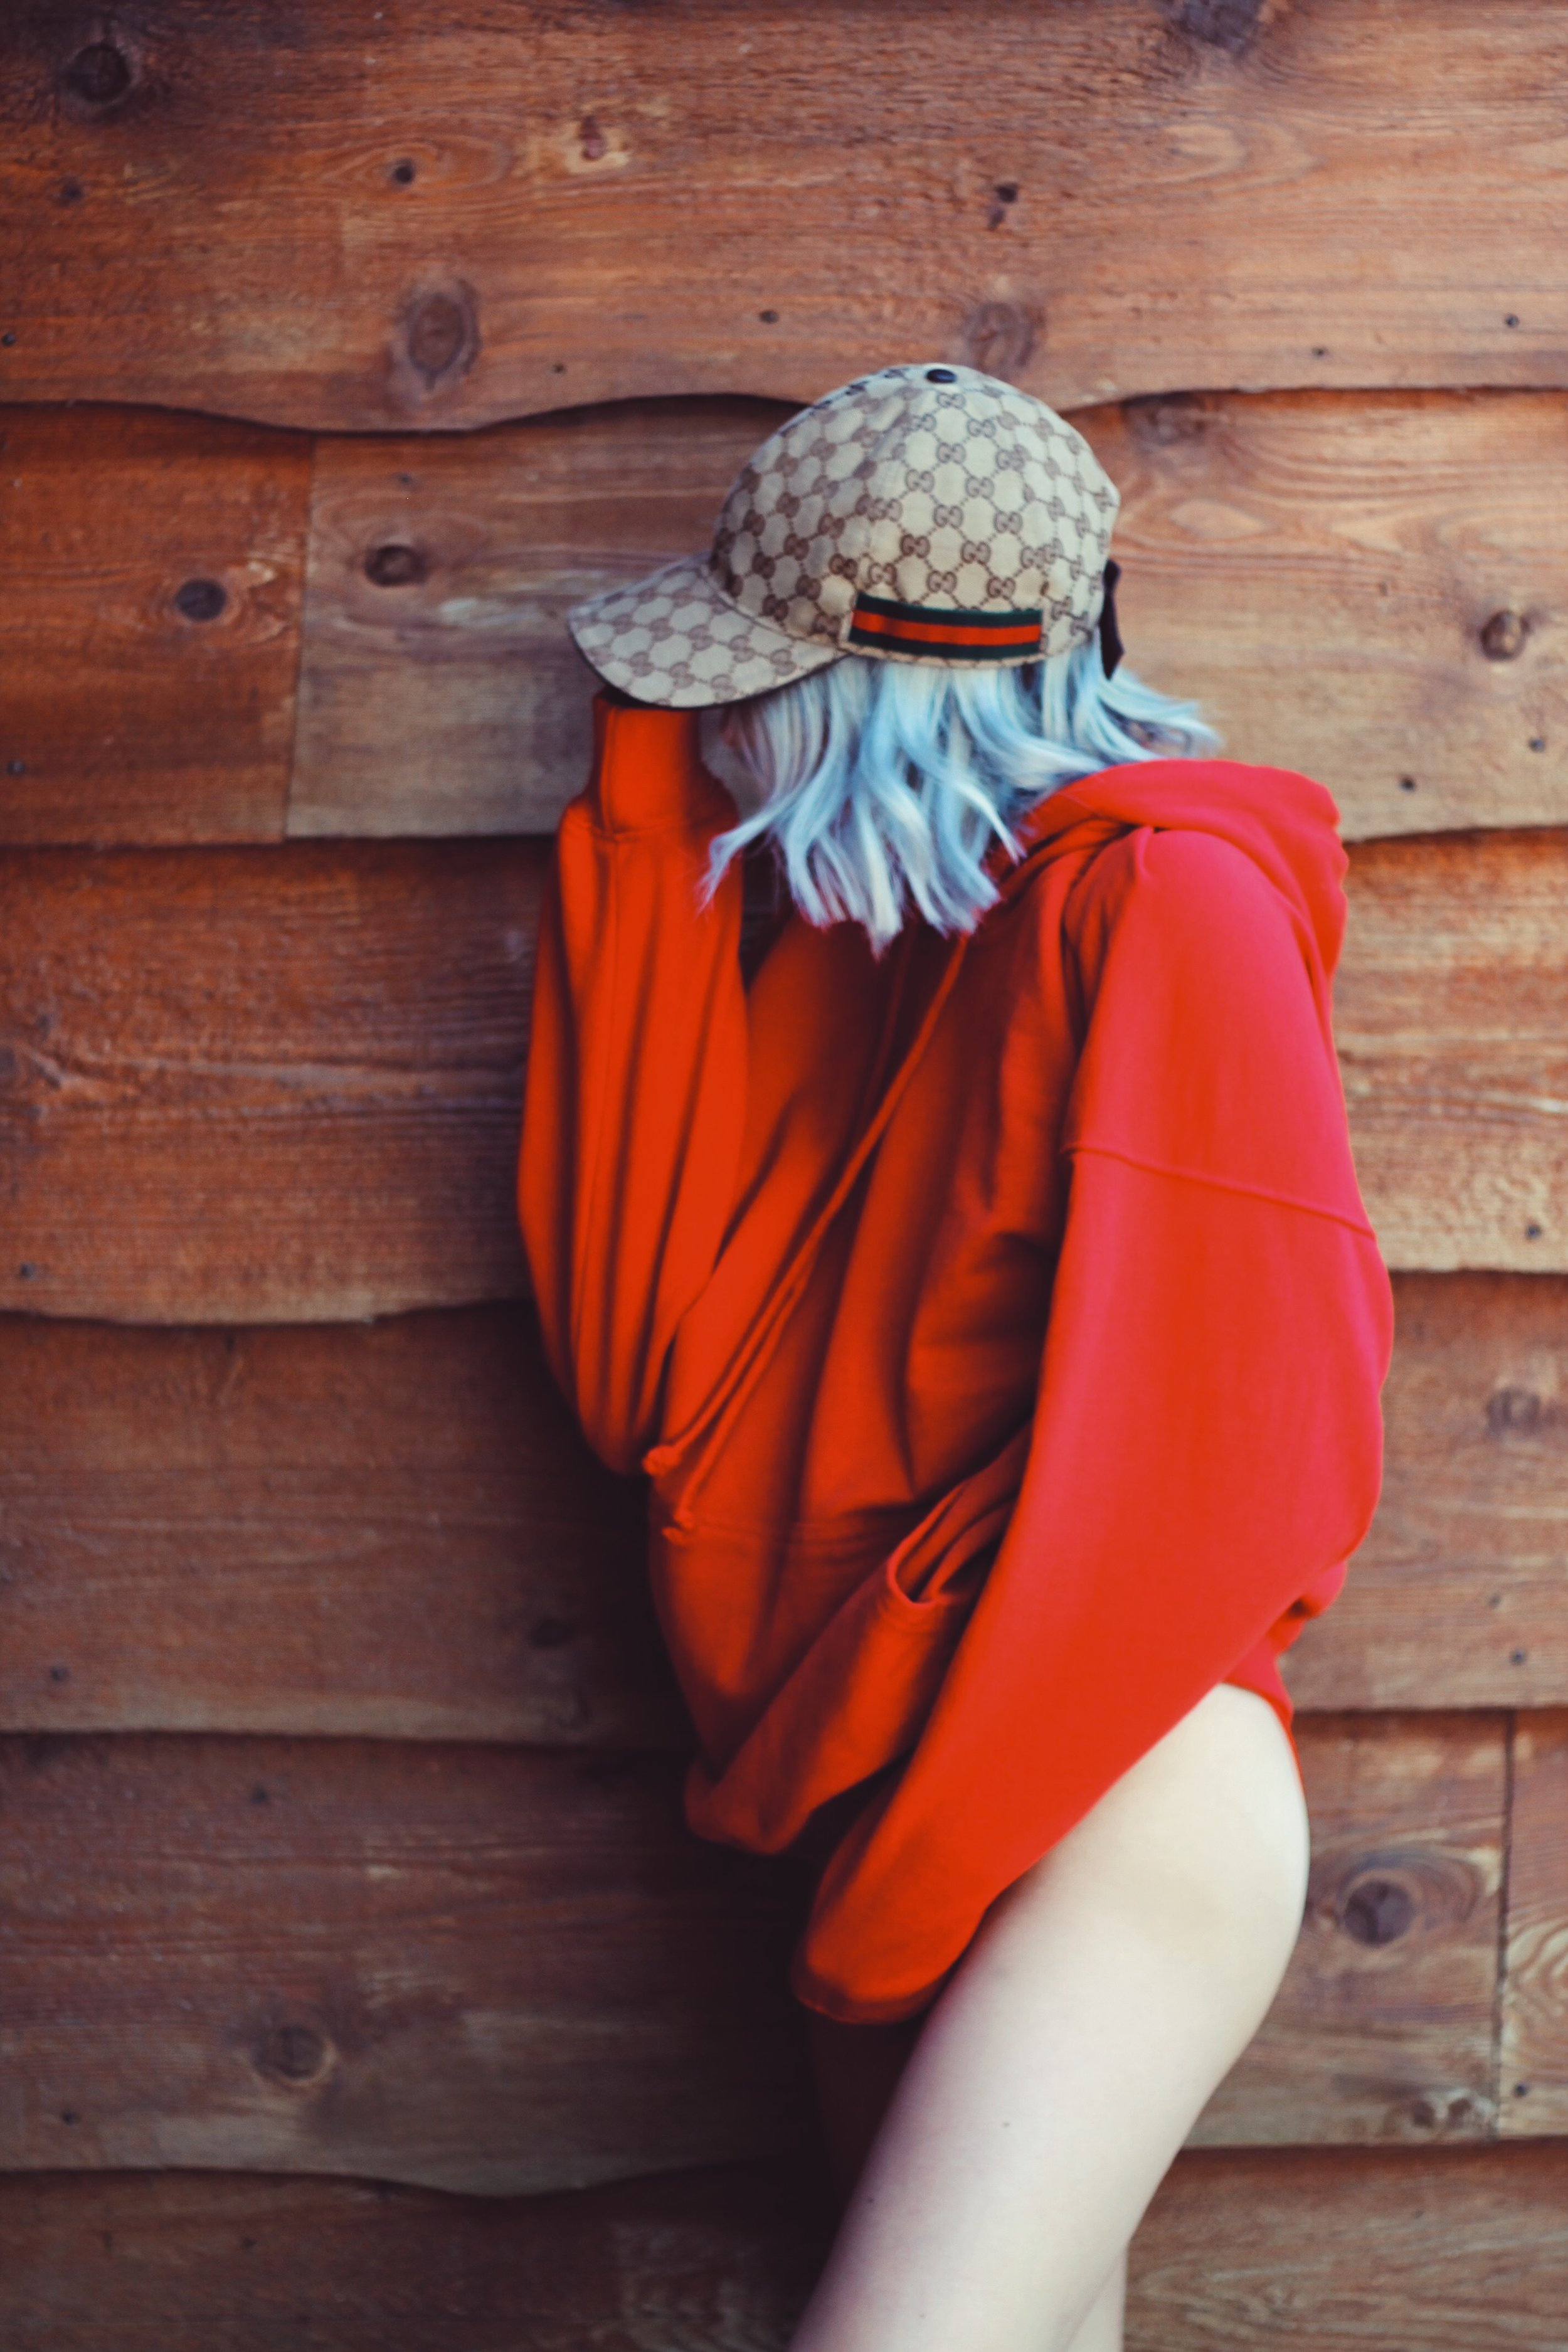 Everything Is Gucci - Monochromatic Red Outfit Styled by Bratty B, Toronto Fashion Blogger